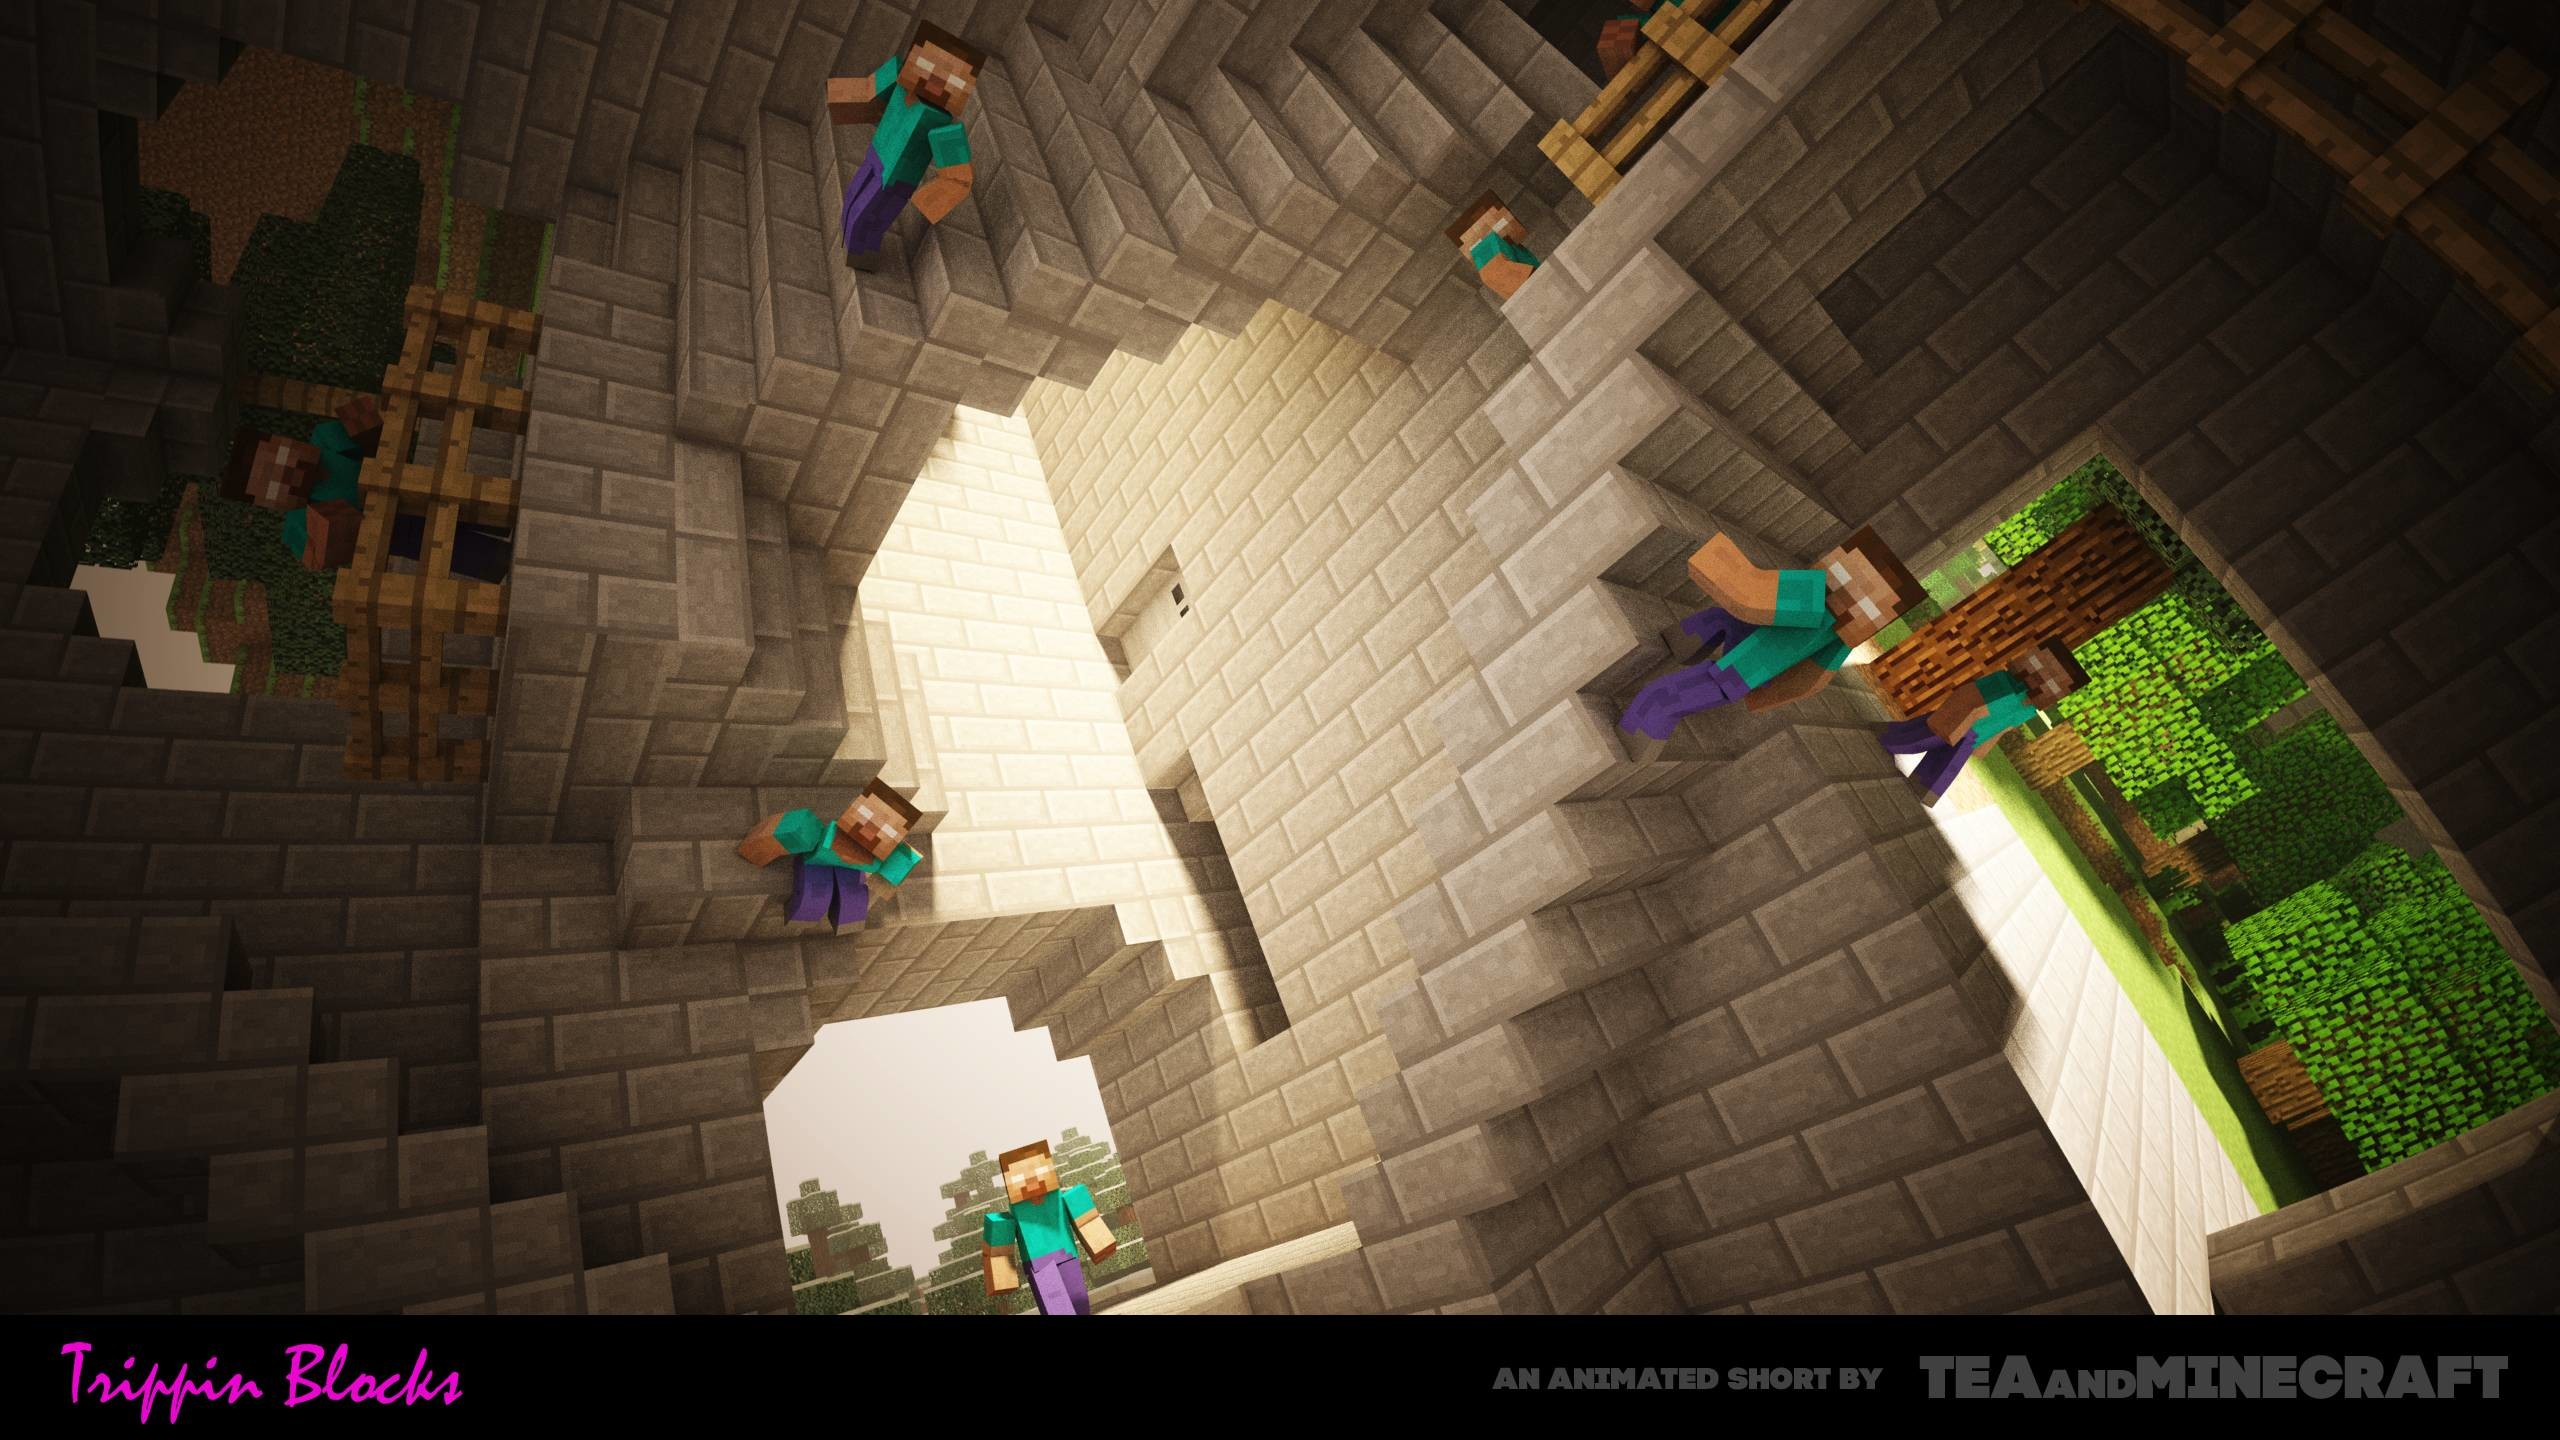 Epic minecraft backgrounds 72 images - Epic wallpapers 2560x1440 ...